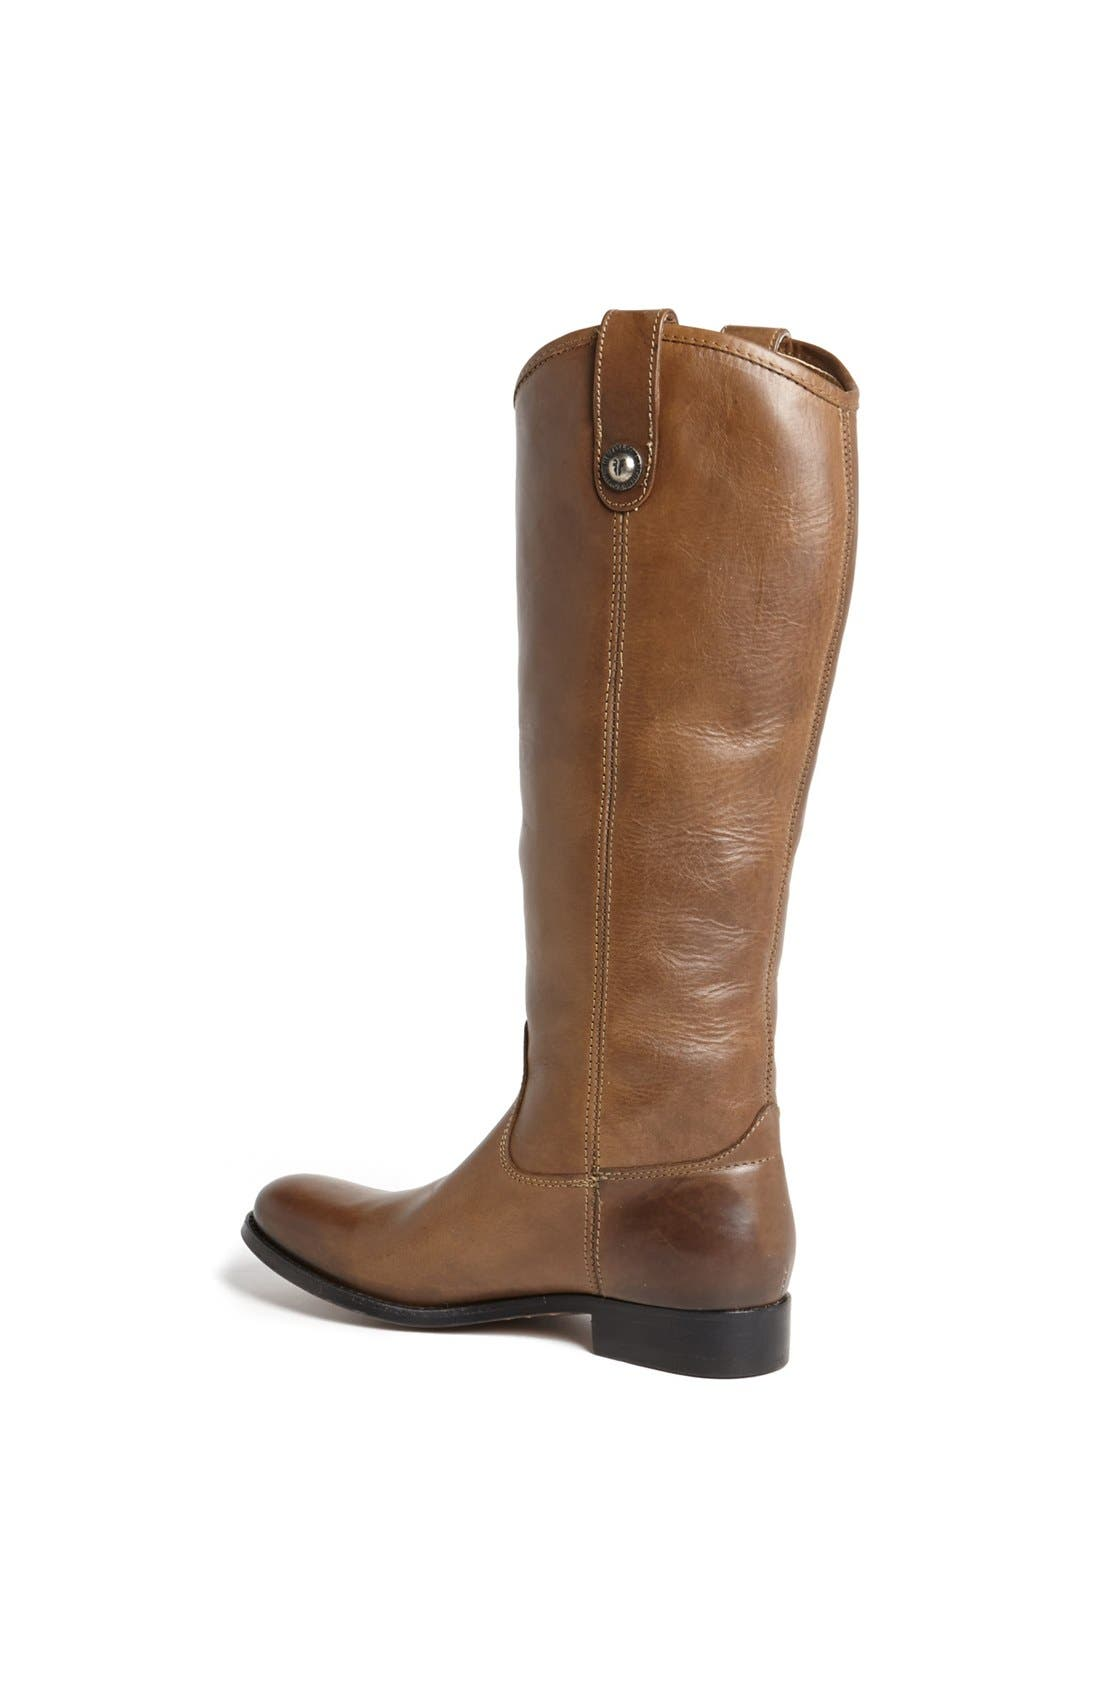 'Melissa Button' Leather Riding Boot,                             Alternate thumbnail 91, color,